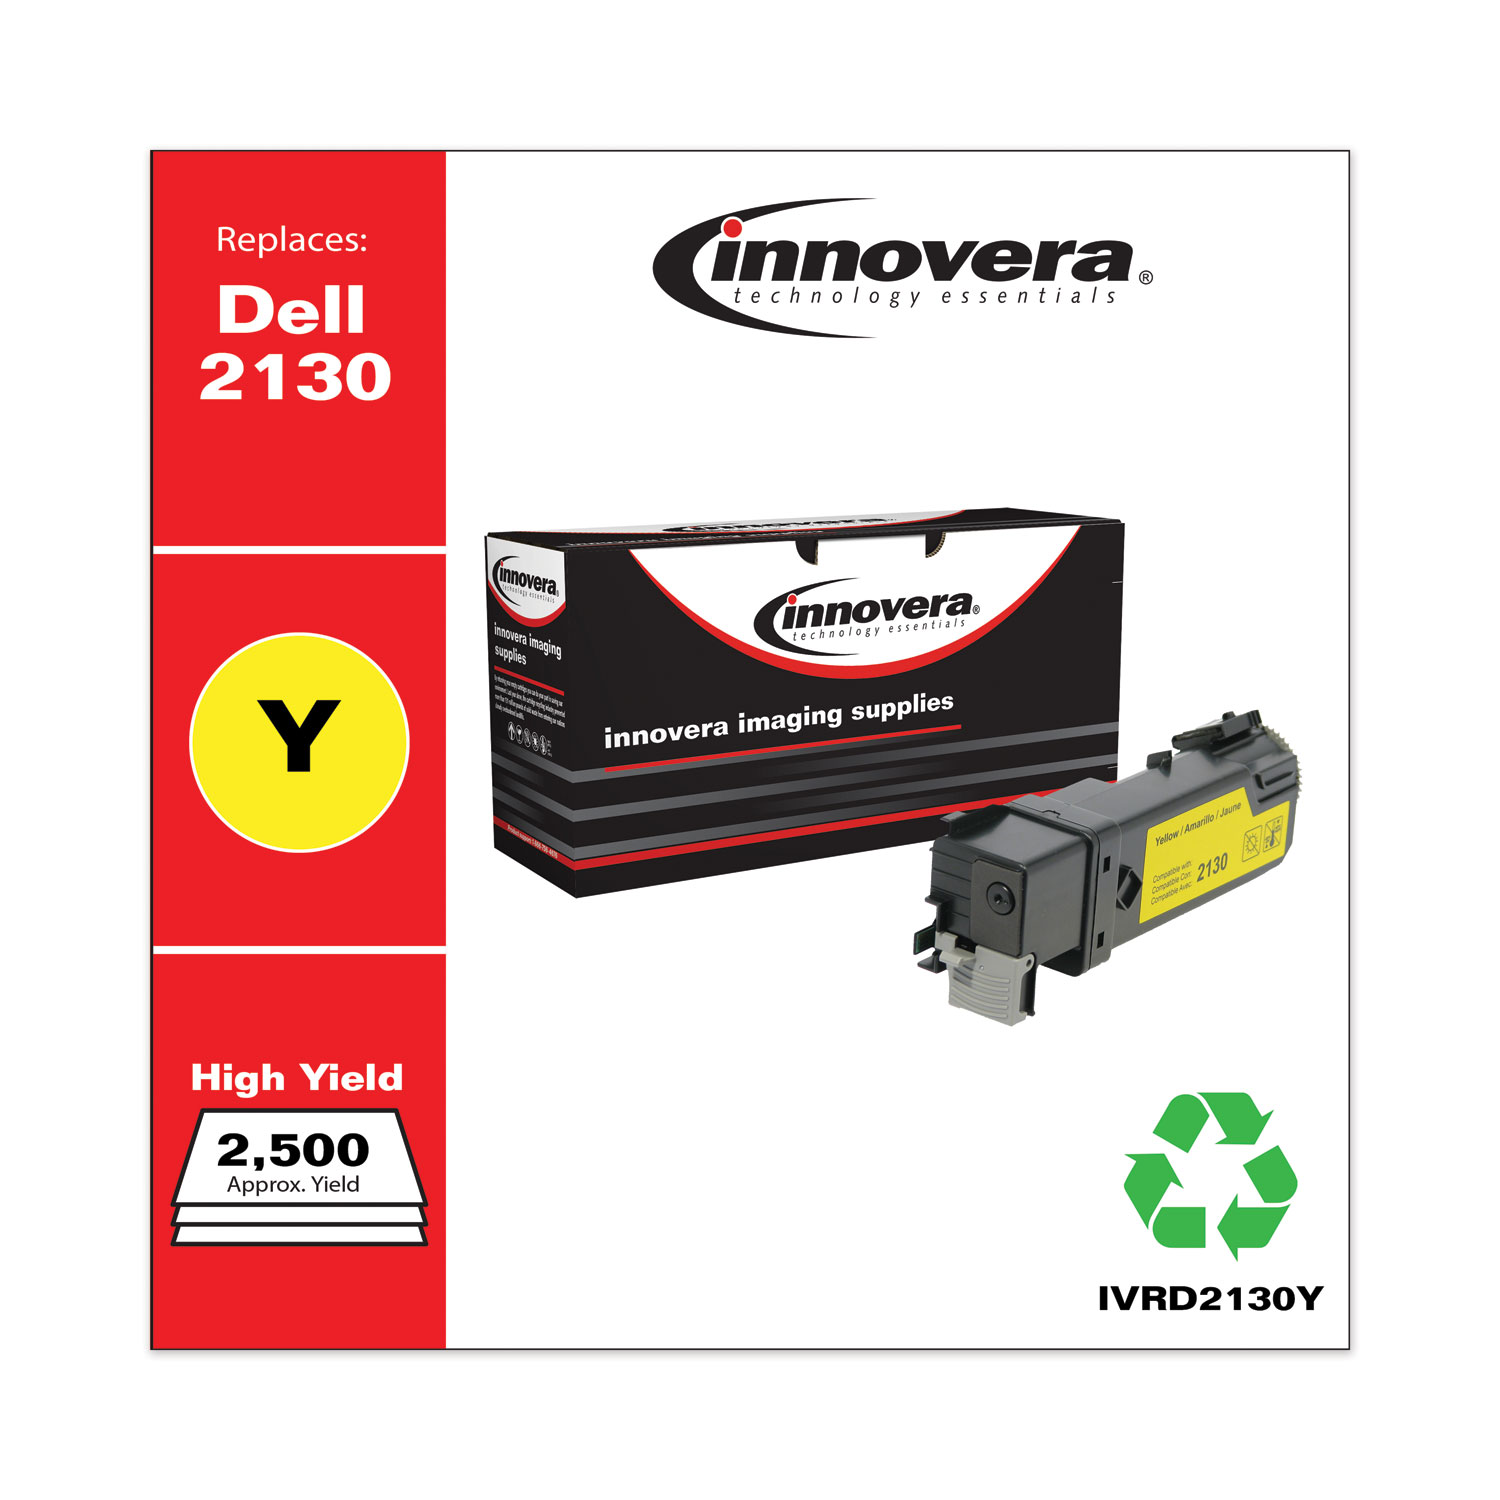 Remanufactured Yellow High-Yield Toner, Replacement for Dell 2130 (330-1438), 2,500 Page-Yield IVRD2130Y